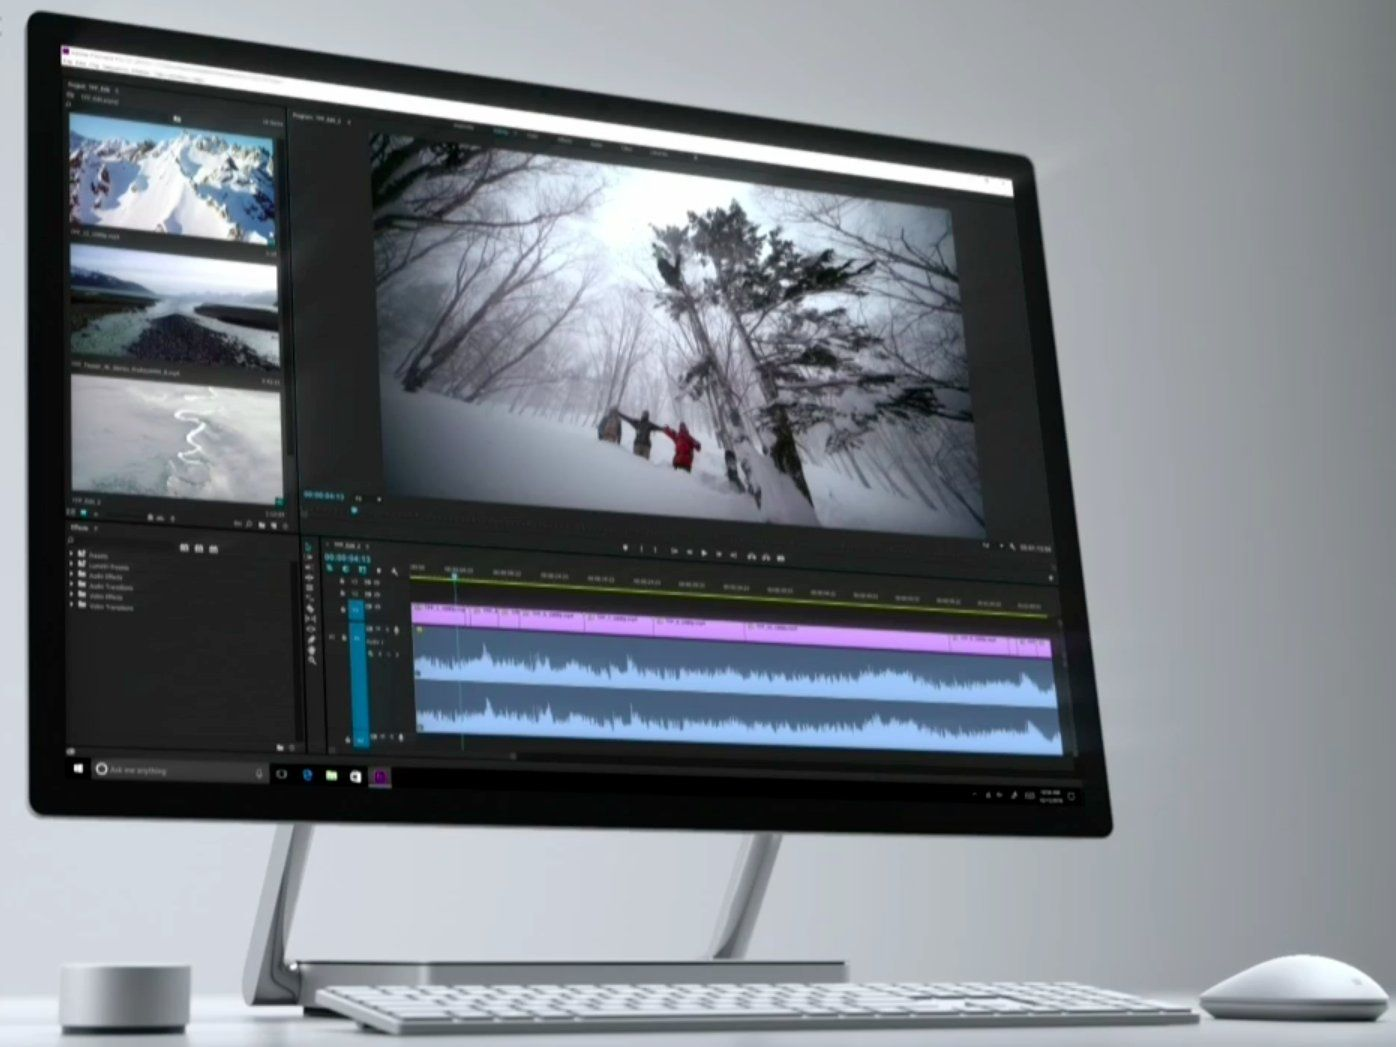 Microsoft Announces Its First Ever Desktop PC The Surface Studio MSFT